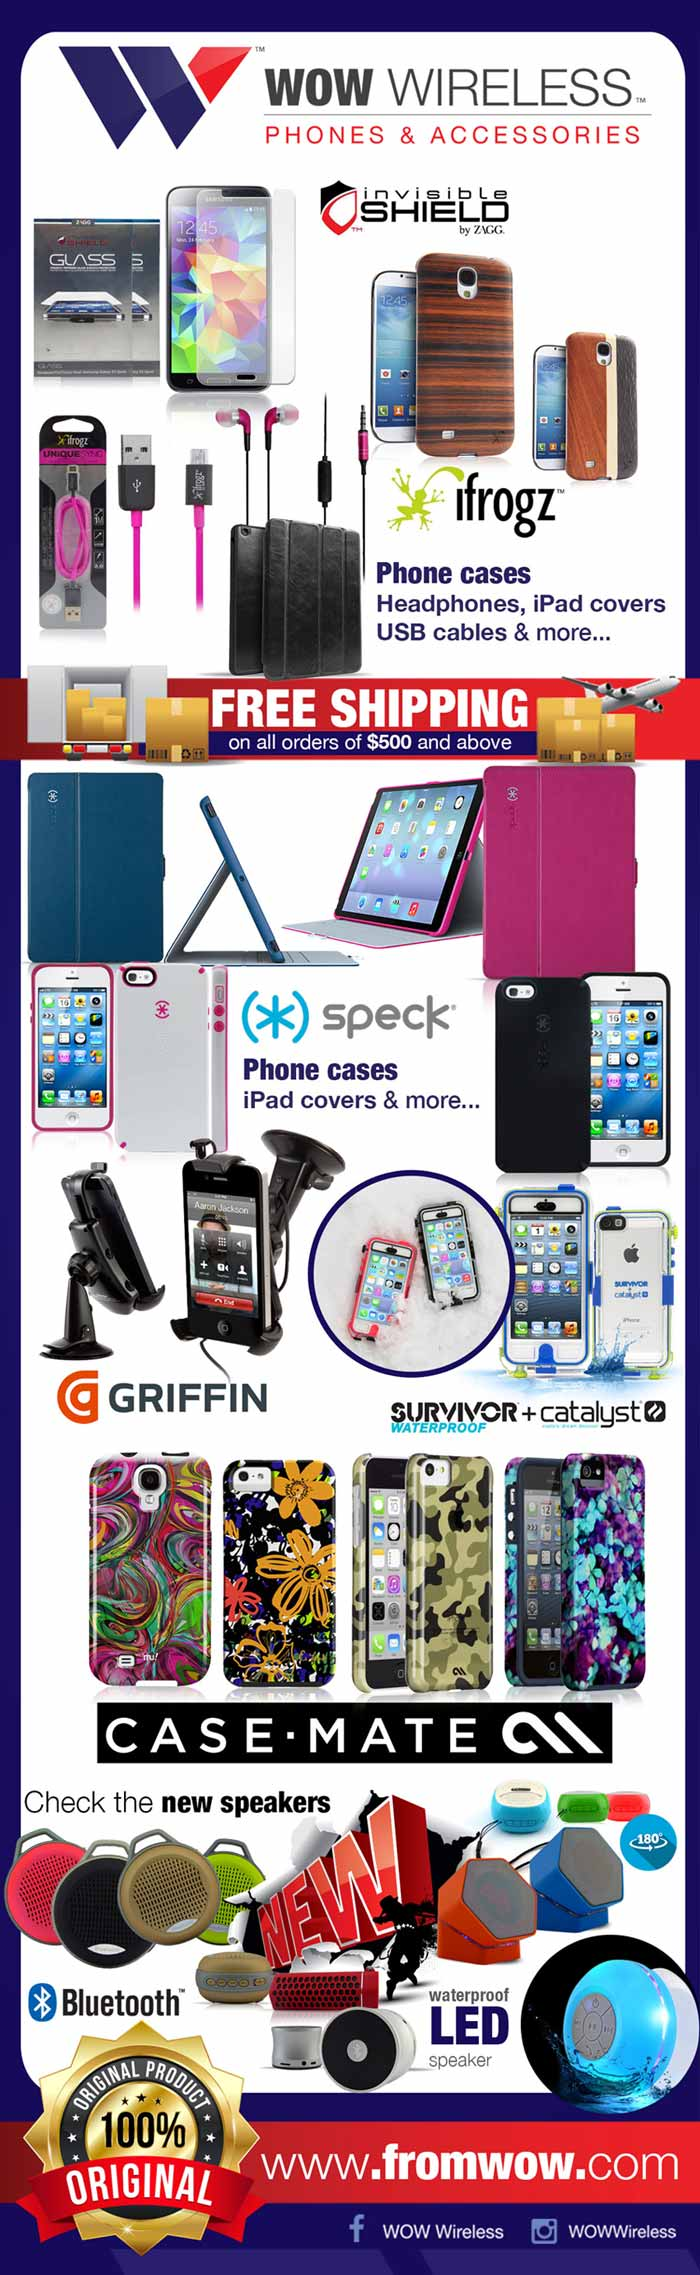 Wholesale Distributor of cell phone accessories, cases, protective screens